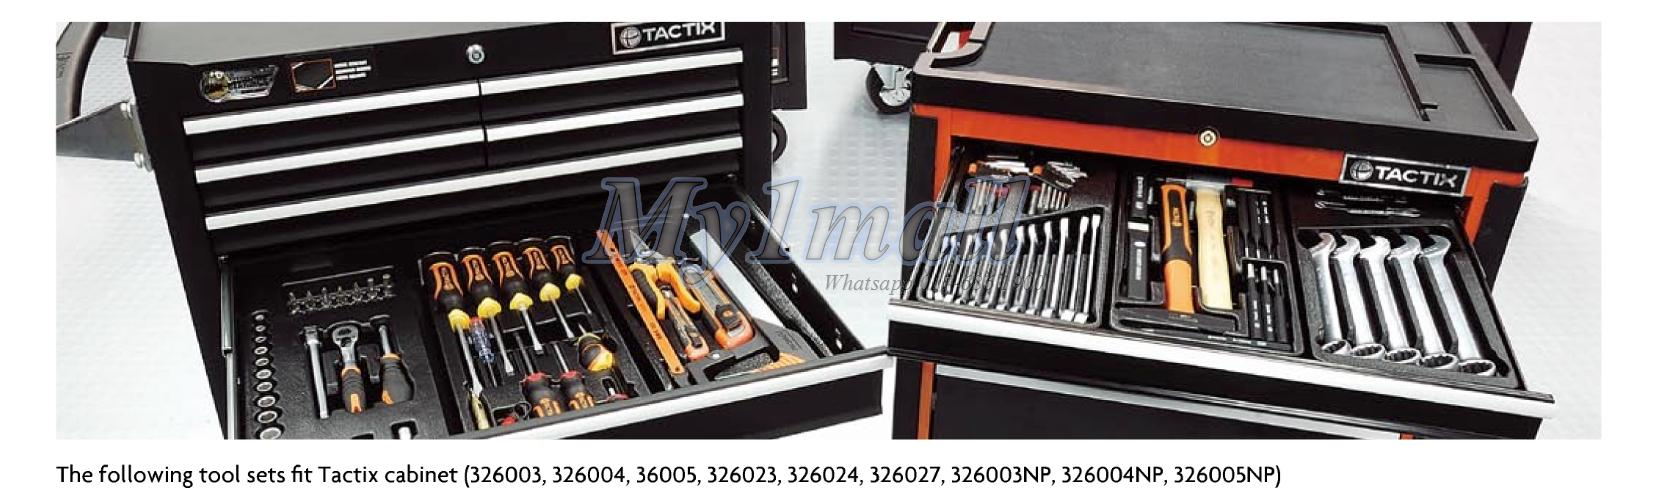 TACTIX 327505 4pcs Cutting Saw Tool Set